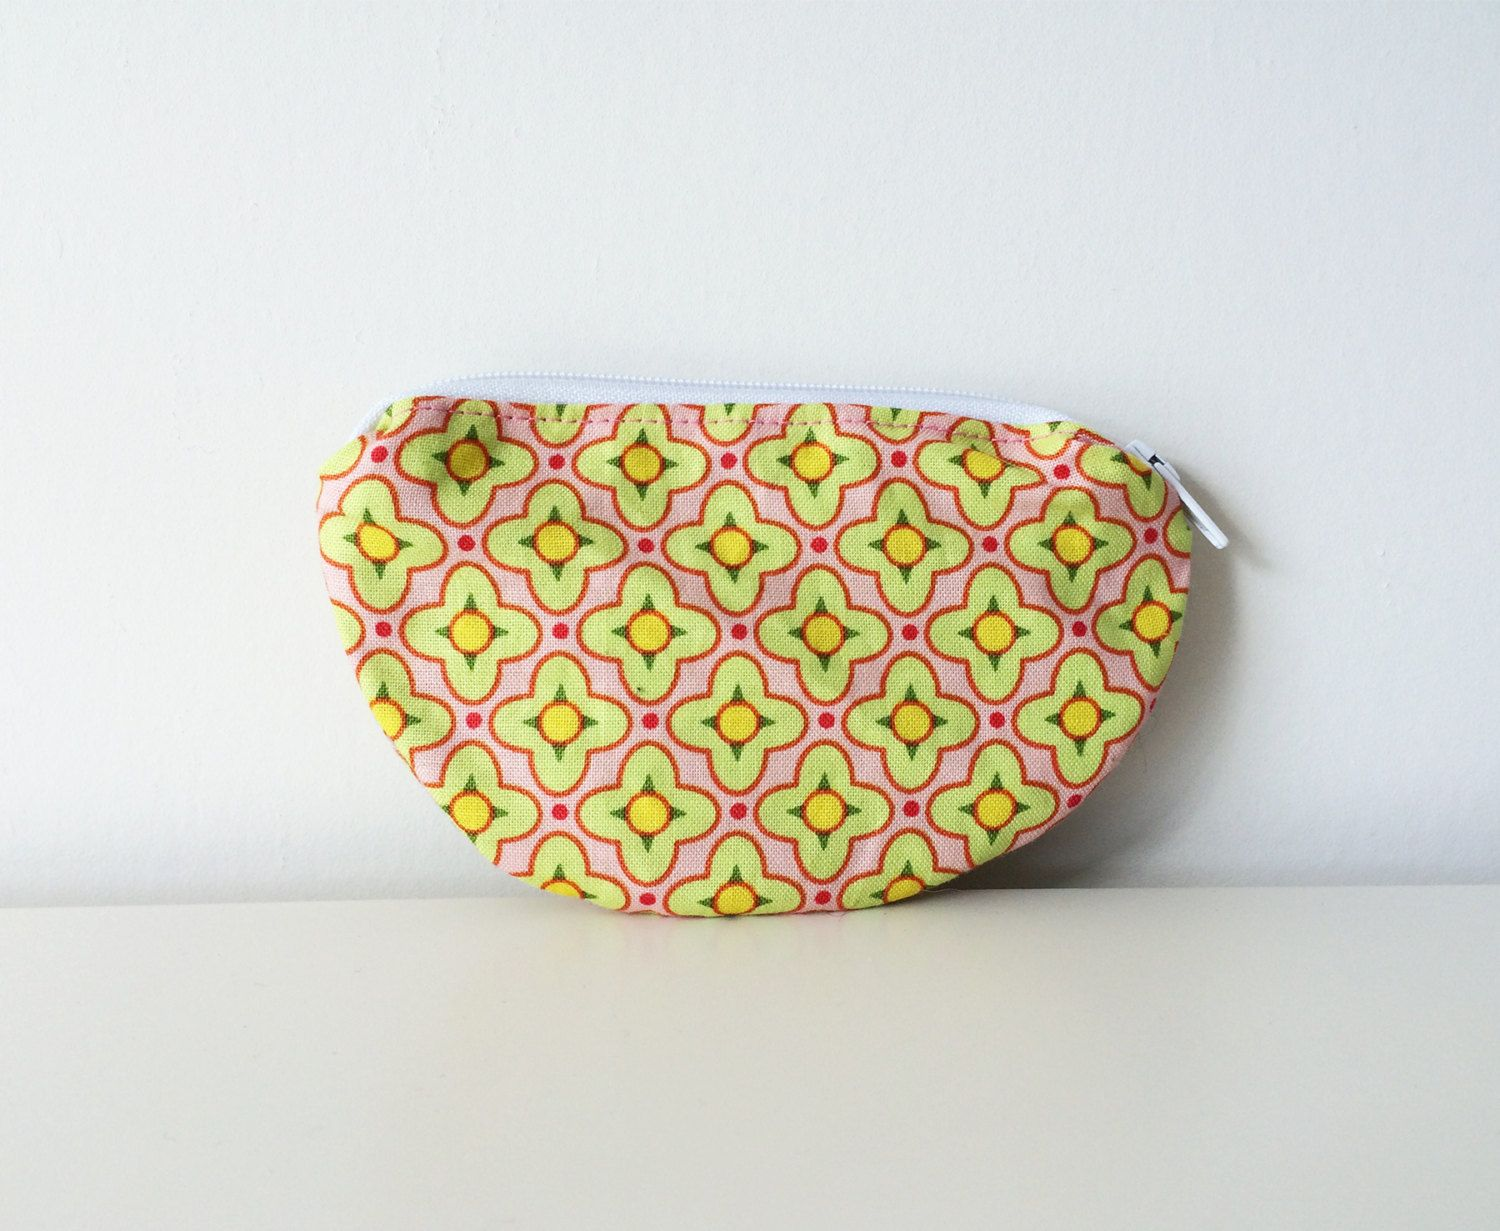 Zipper Coin Pouch - Small Pouch, Semi Circle - Pink, Green, Yellow - Girl Patterned Floral Pouch - Mini Bag - Lined - Change Purse by BlackcatmeowDesigns on Etsy